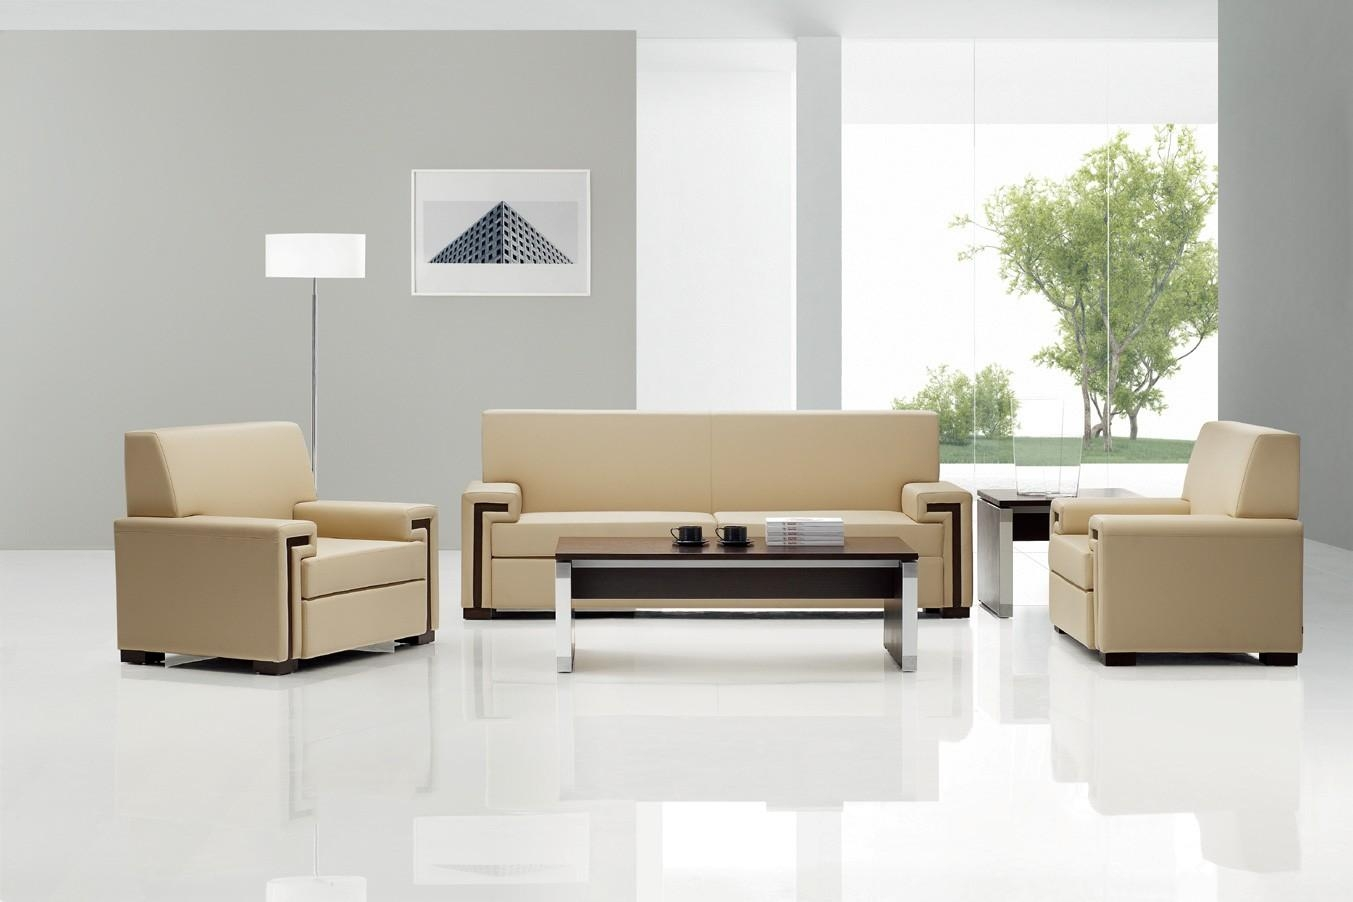 Sofa : Office Sofa Design Ideas Amazing Simple In Office Sofa With Office Sofa Chairs (Image 17 of 20)